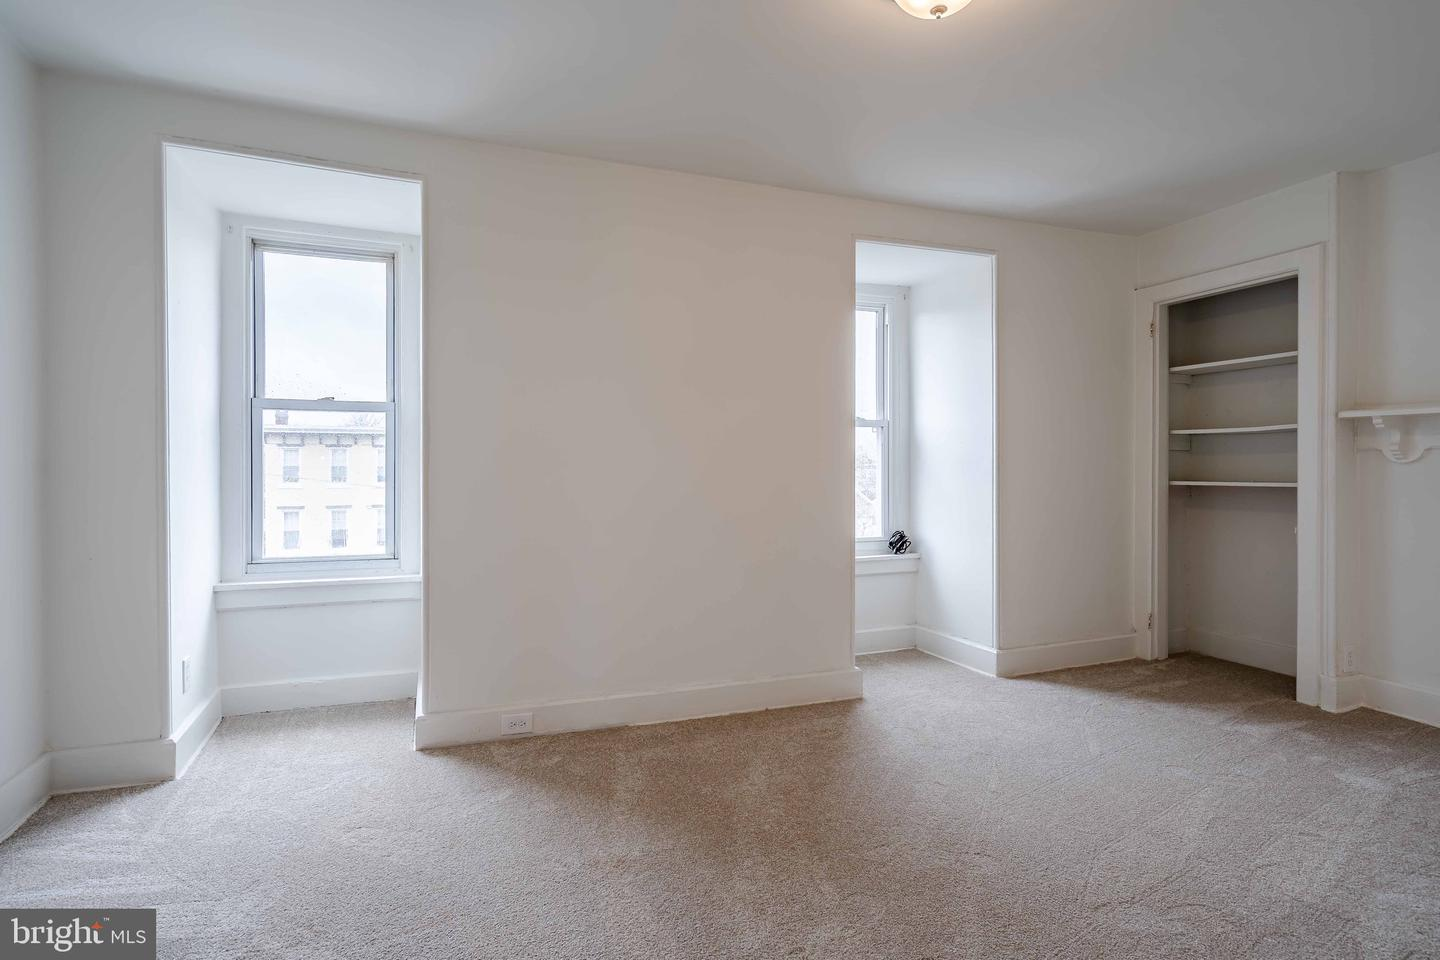 Additional photo for property listing at 303 S MAIN ST #3 Phoenixville, ペンシルベニア 19460 アメリカ